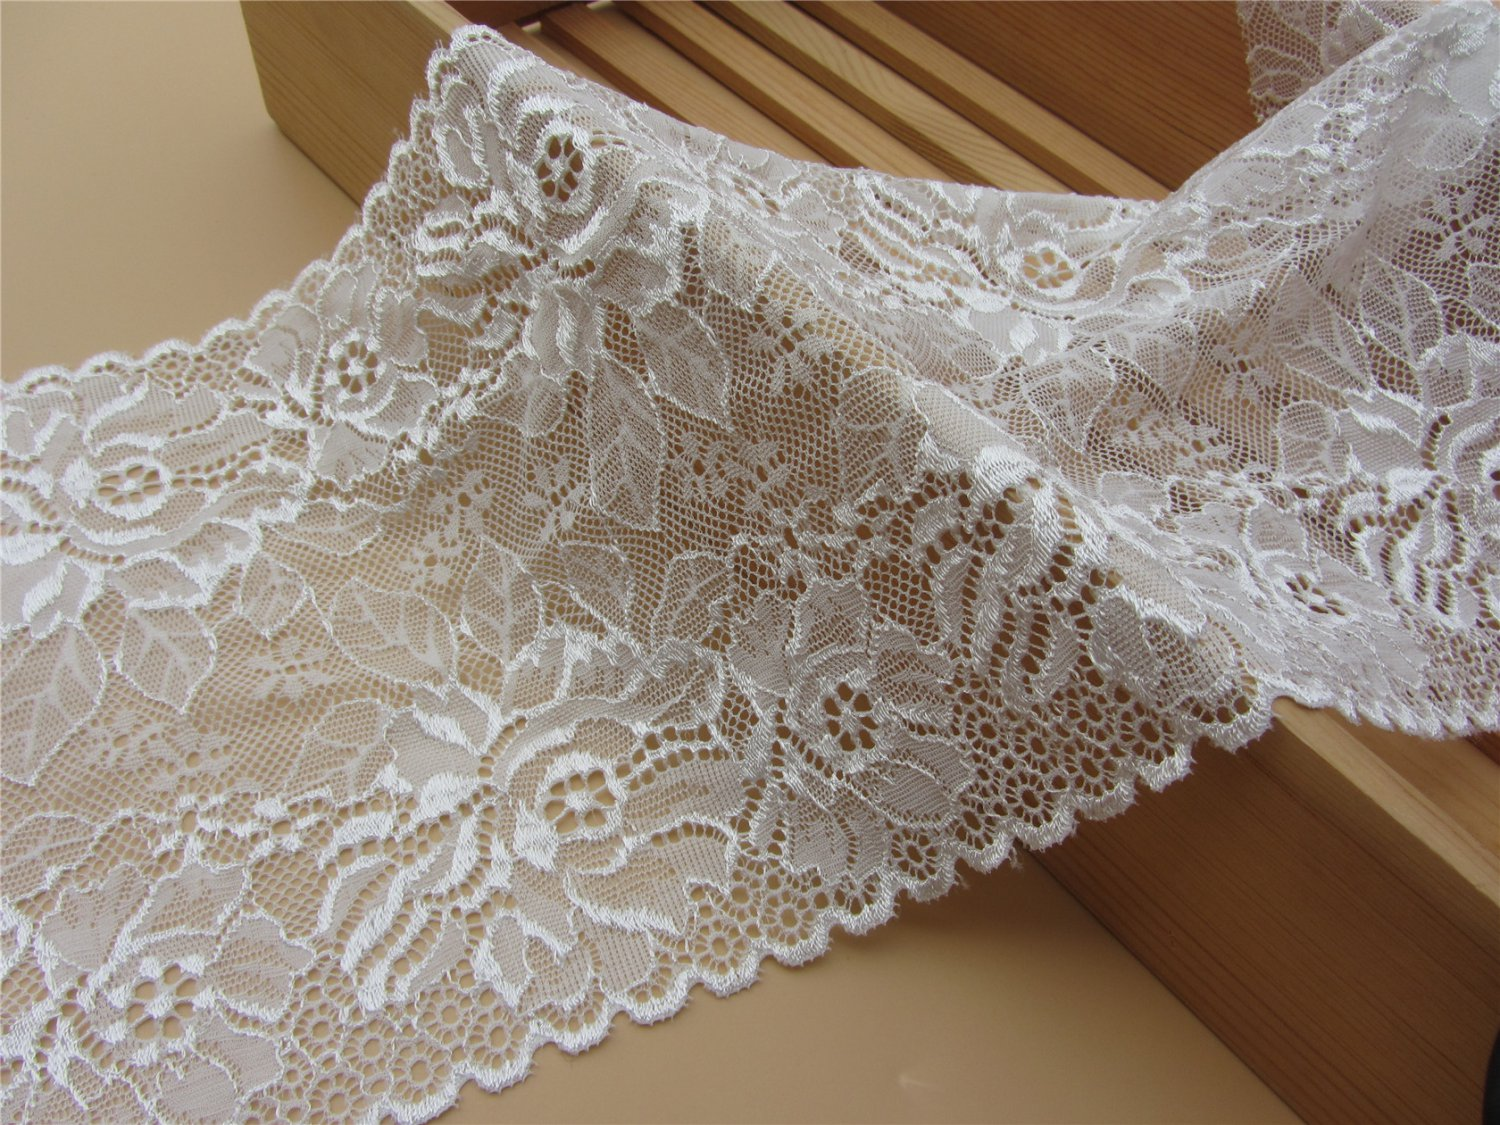 Stretch lace trim,5yards white lace,garter lace trimming-LSY022